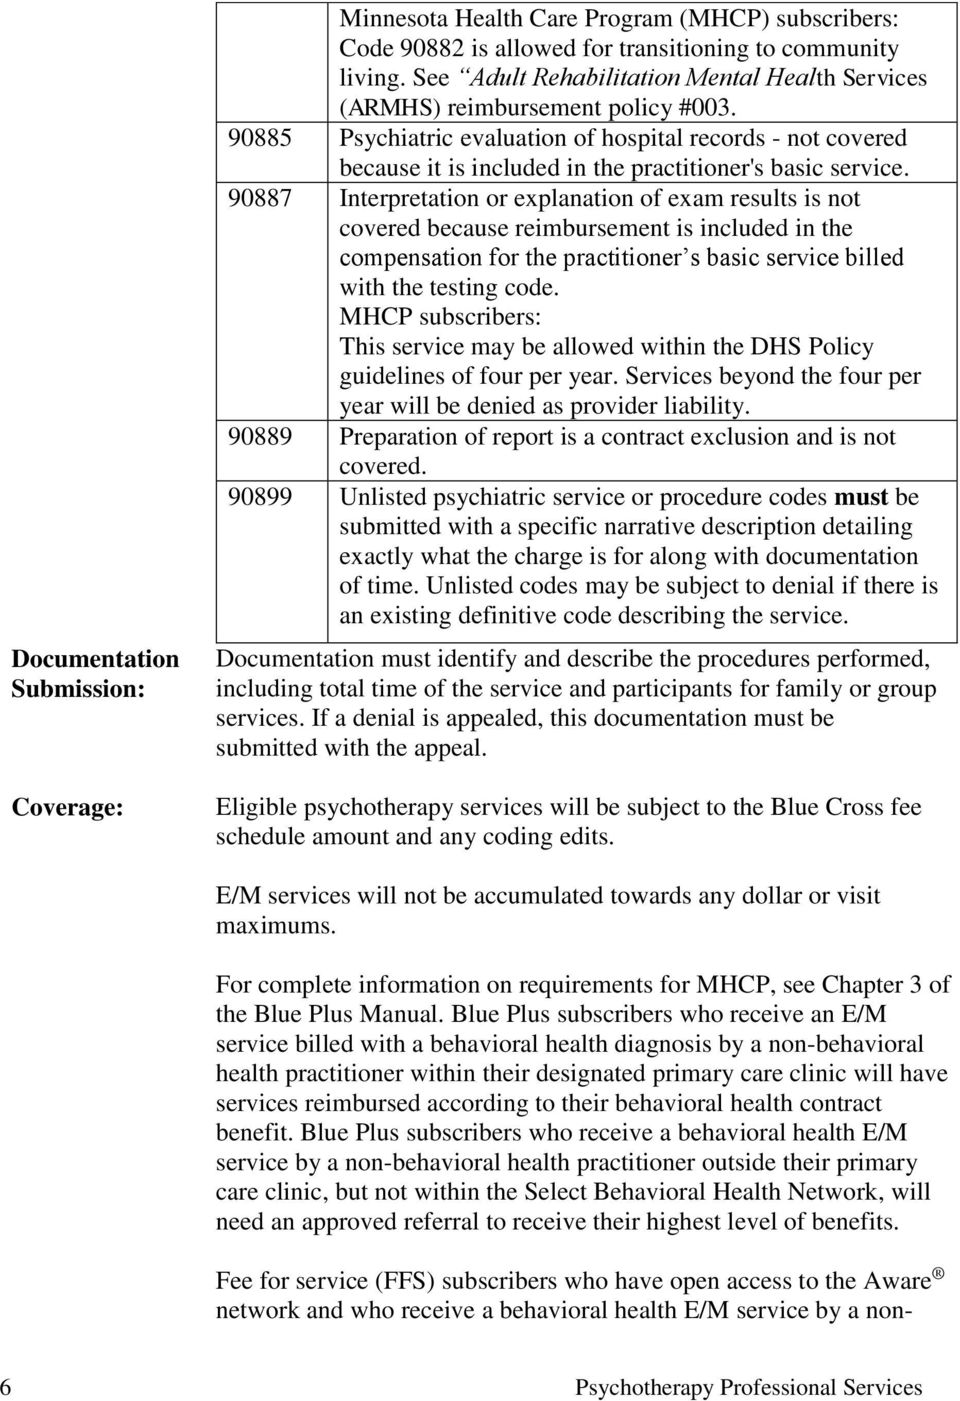 90885 Psychiatric evaluation of hospital records - not covered because it is included in the practitioner's basic service.